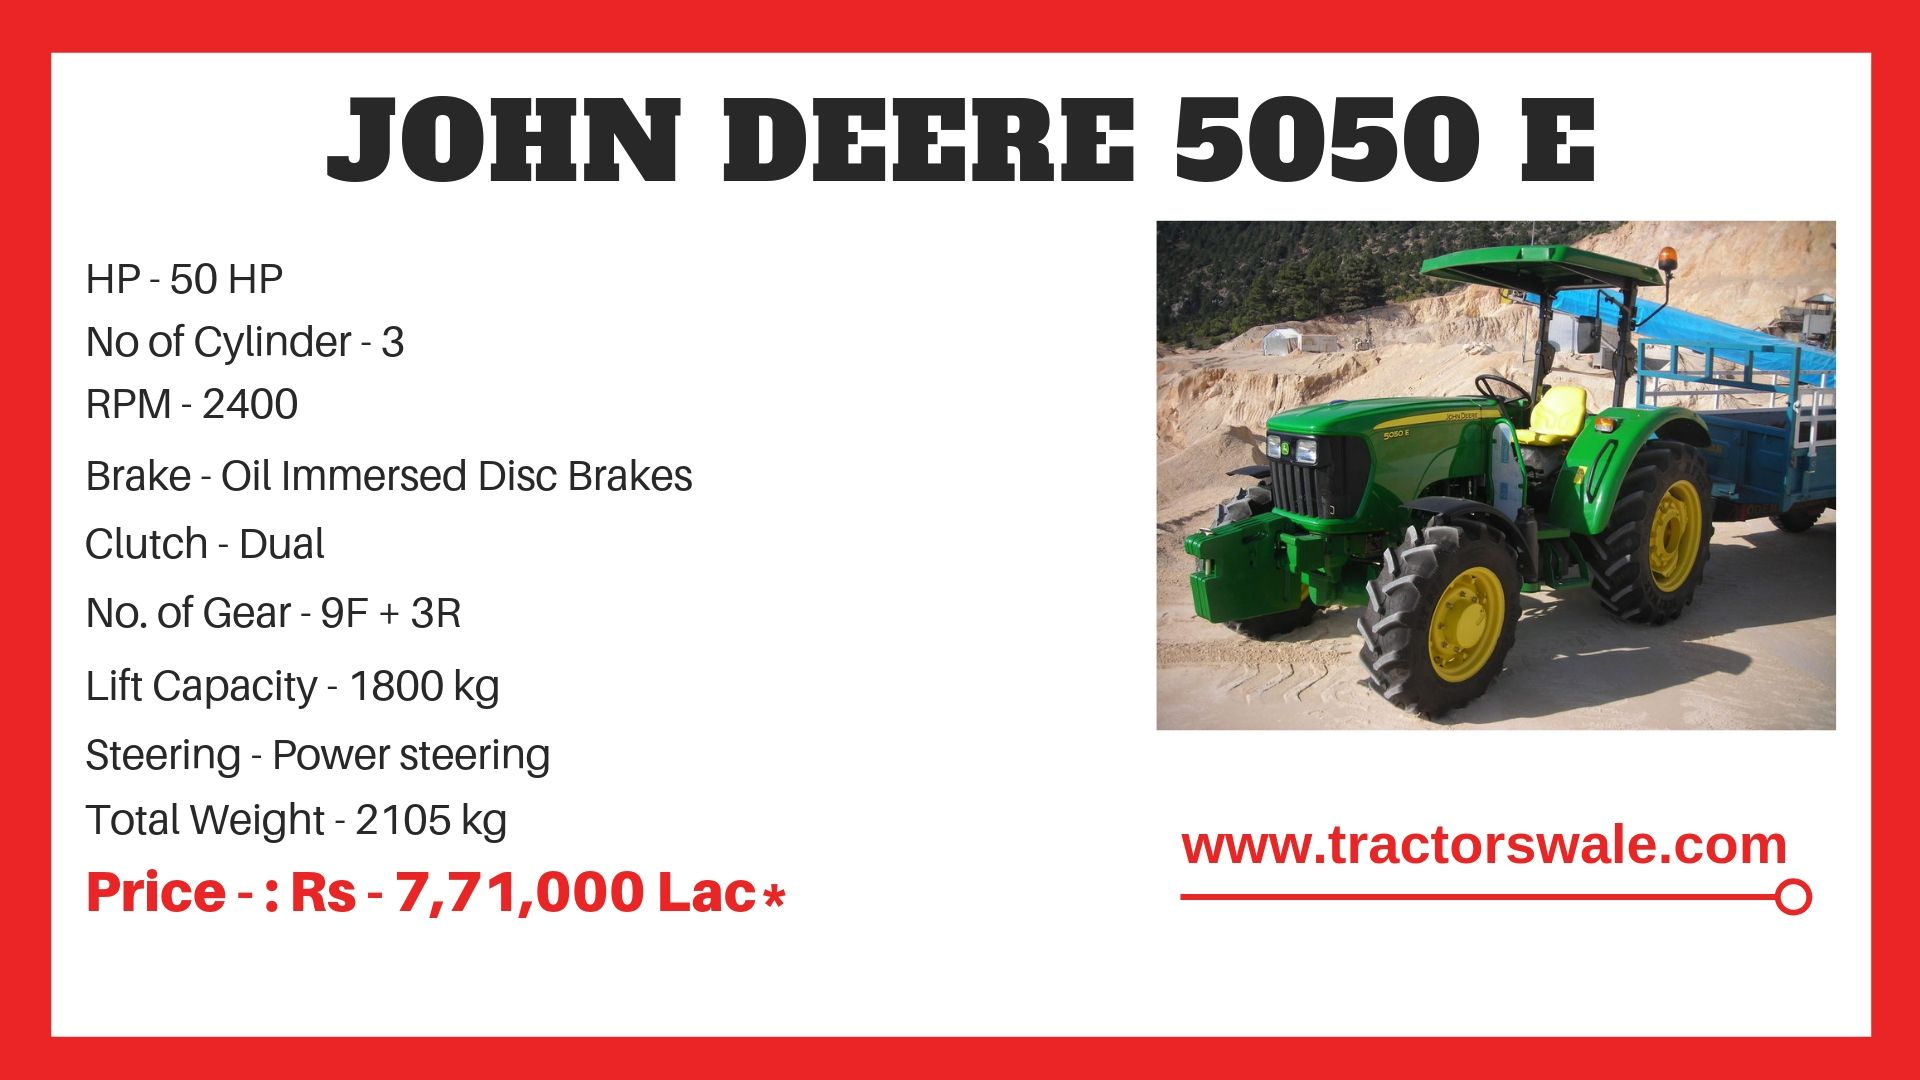 John Deere 5050 E Tractor Specifications